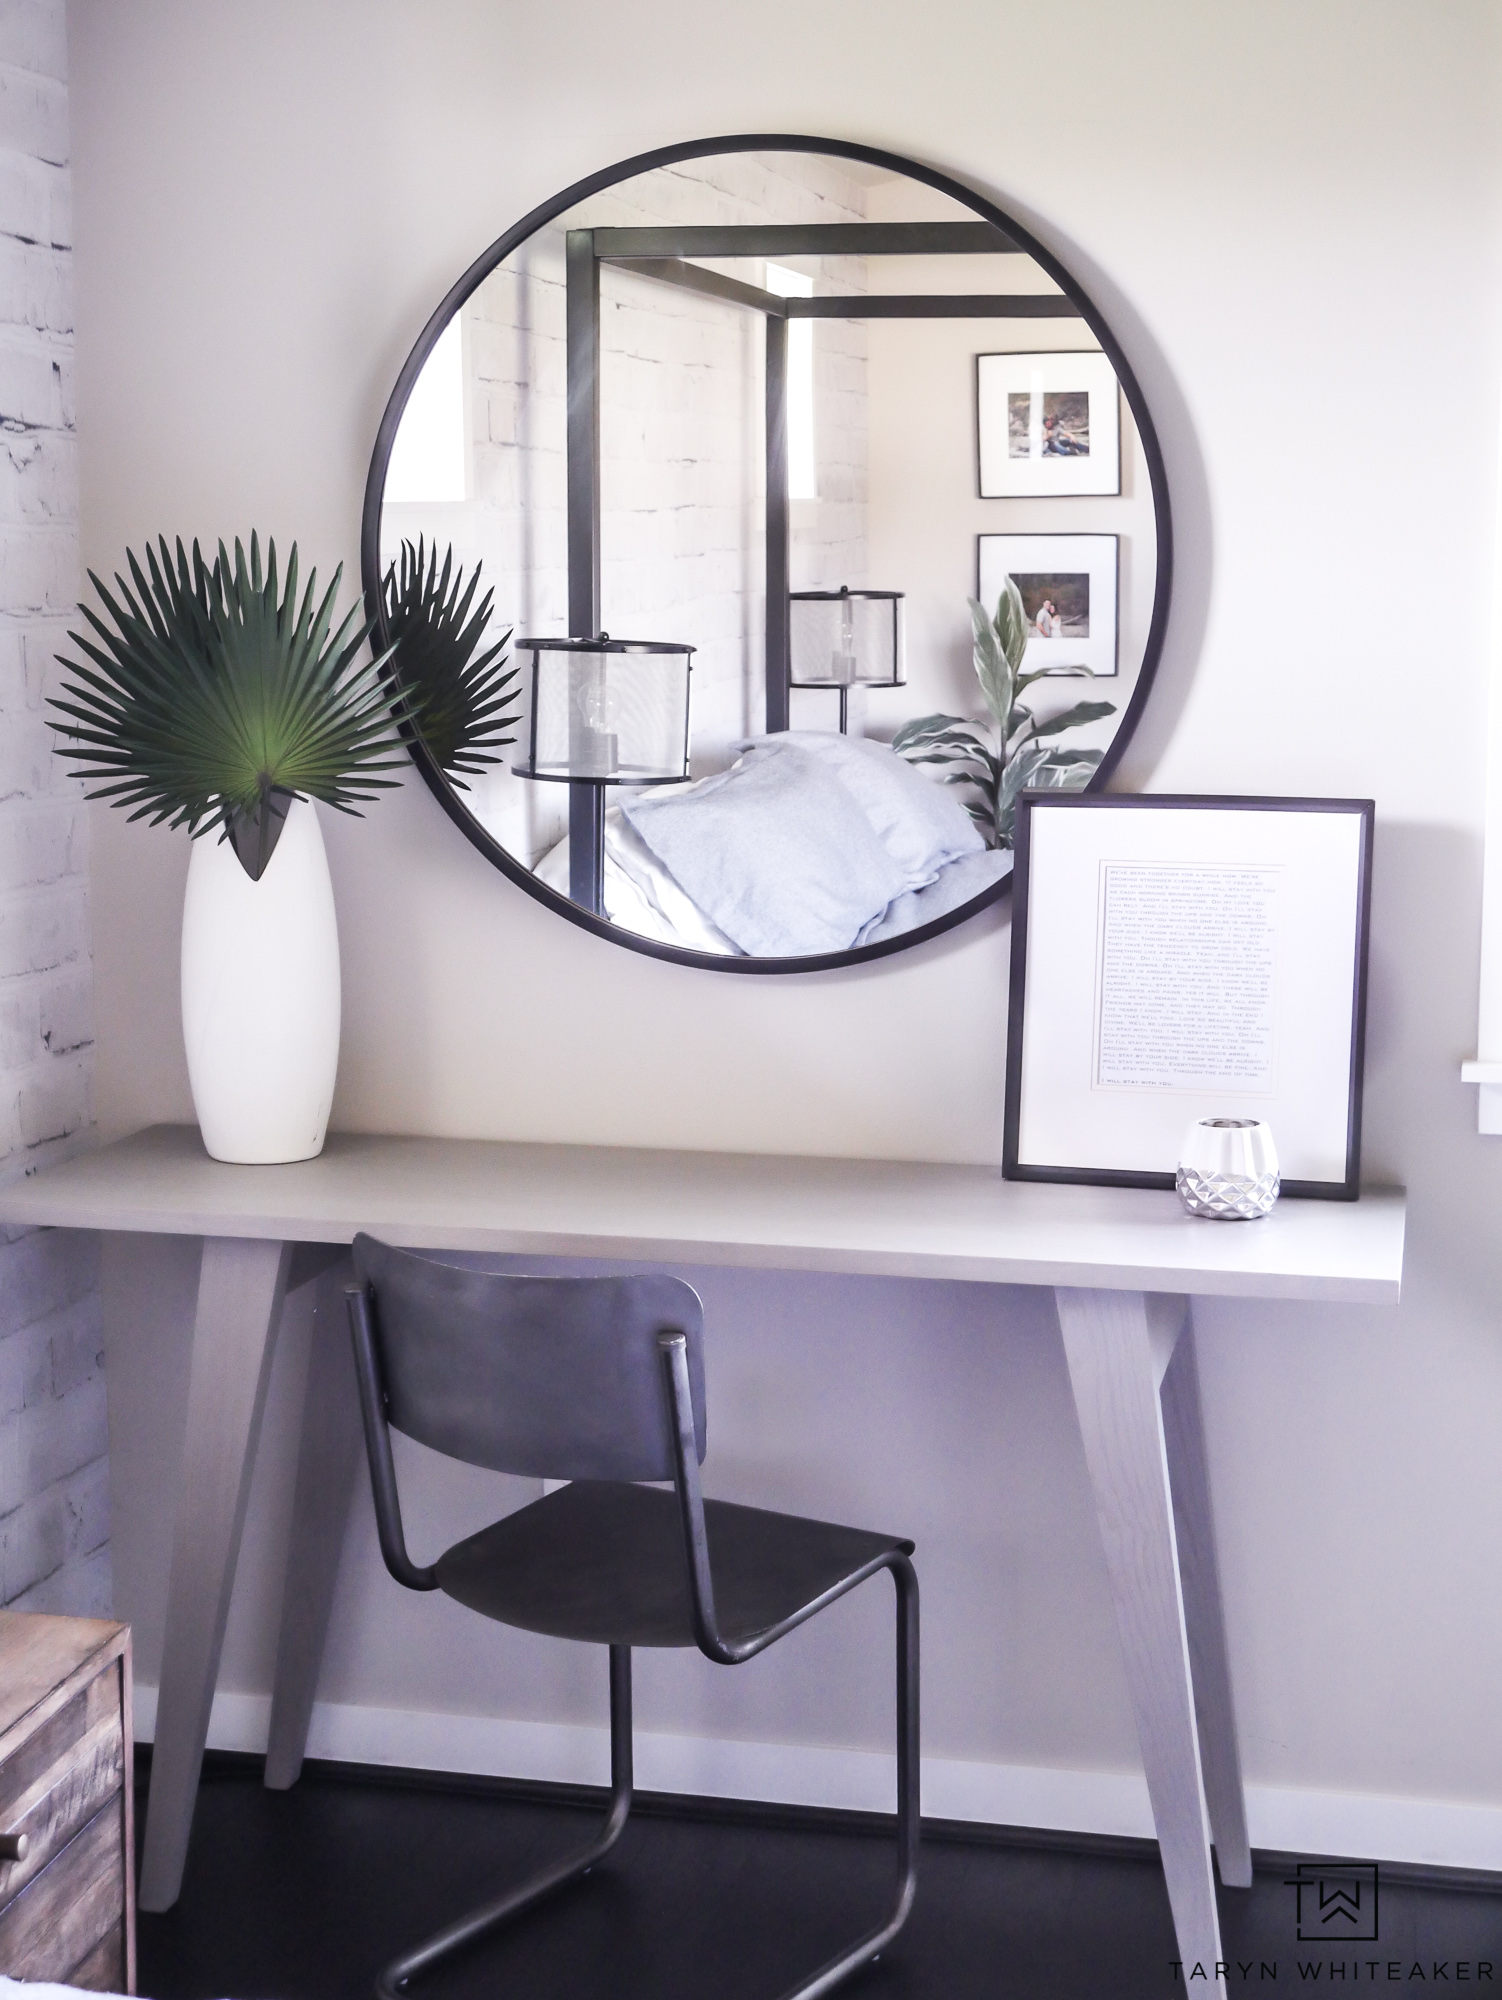 Black round mirrors are all the rage! Love this modern bedroom desk decor!